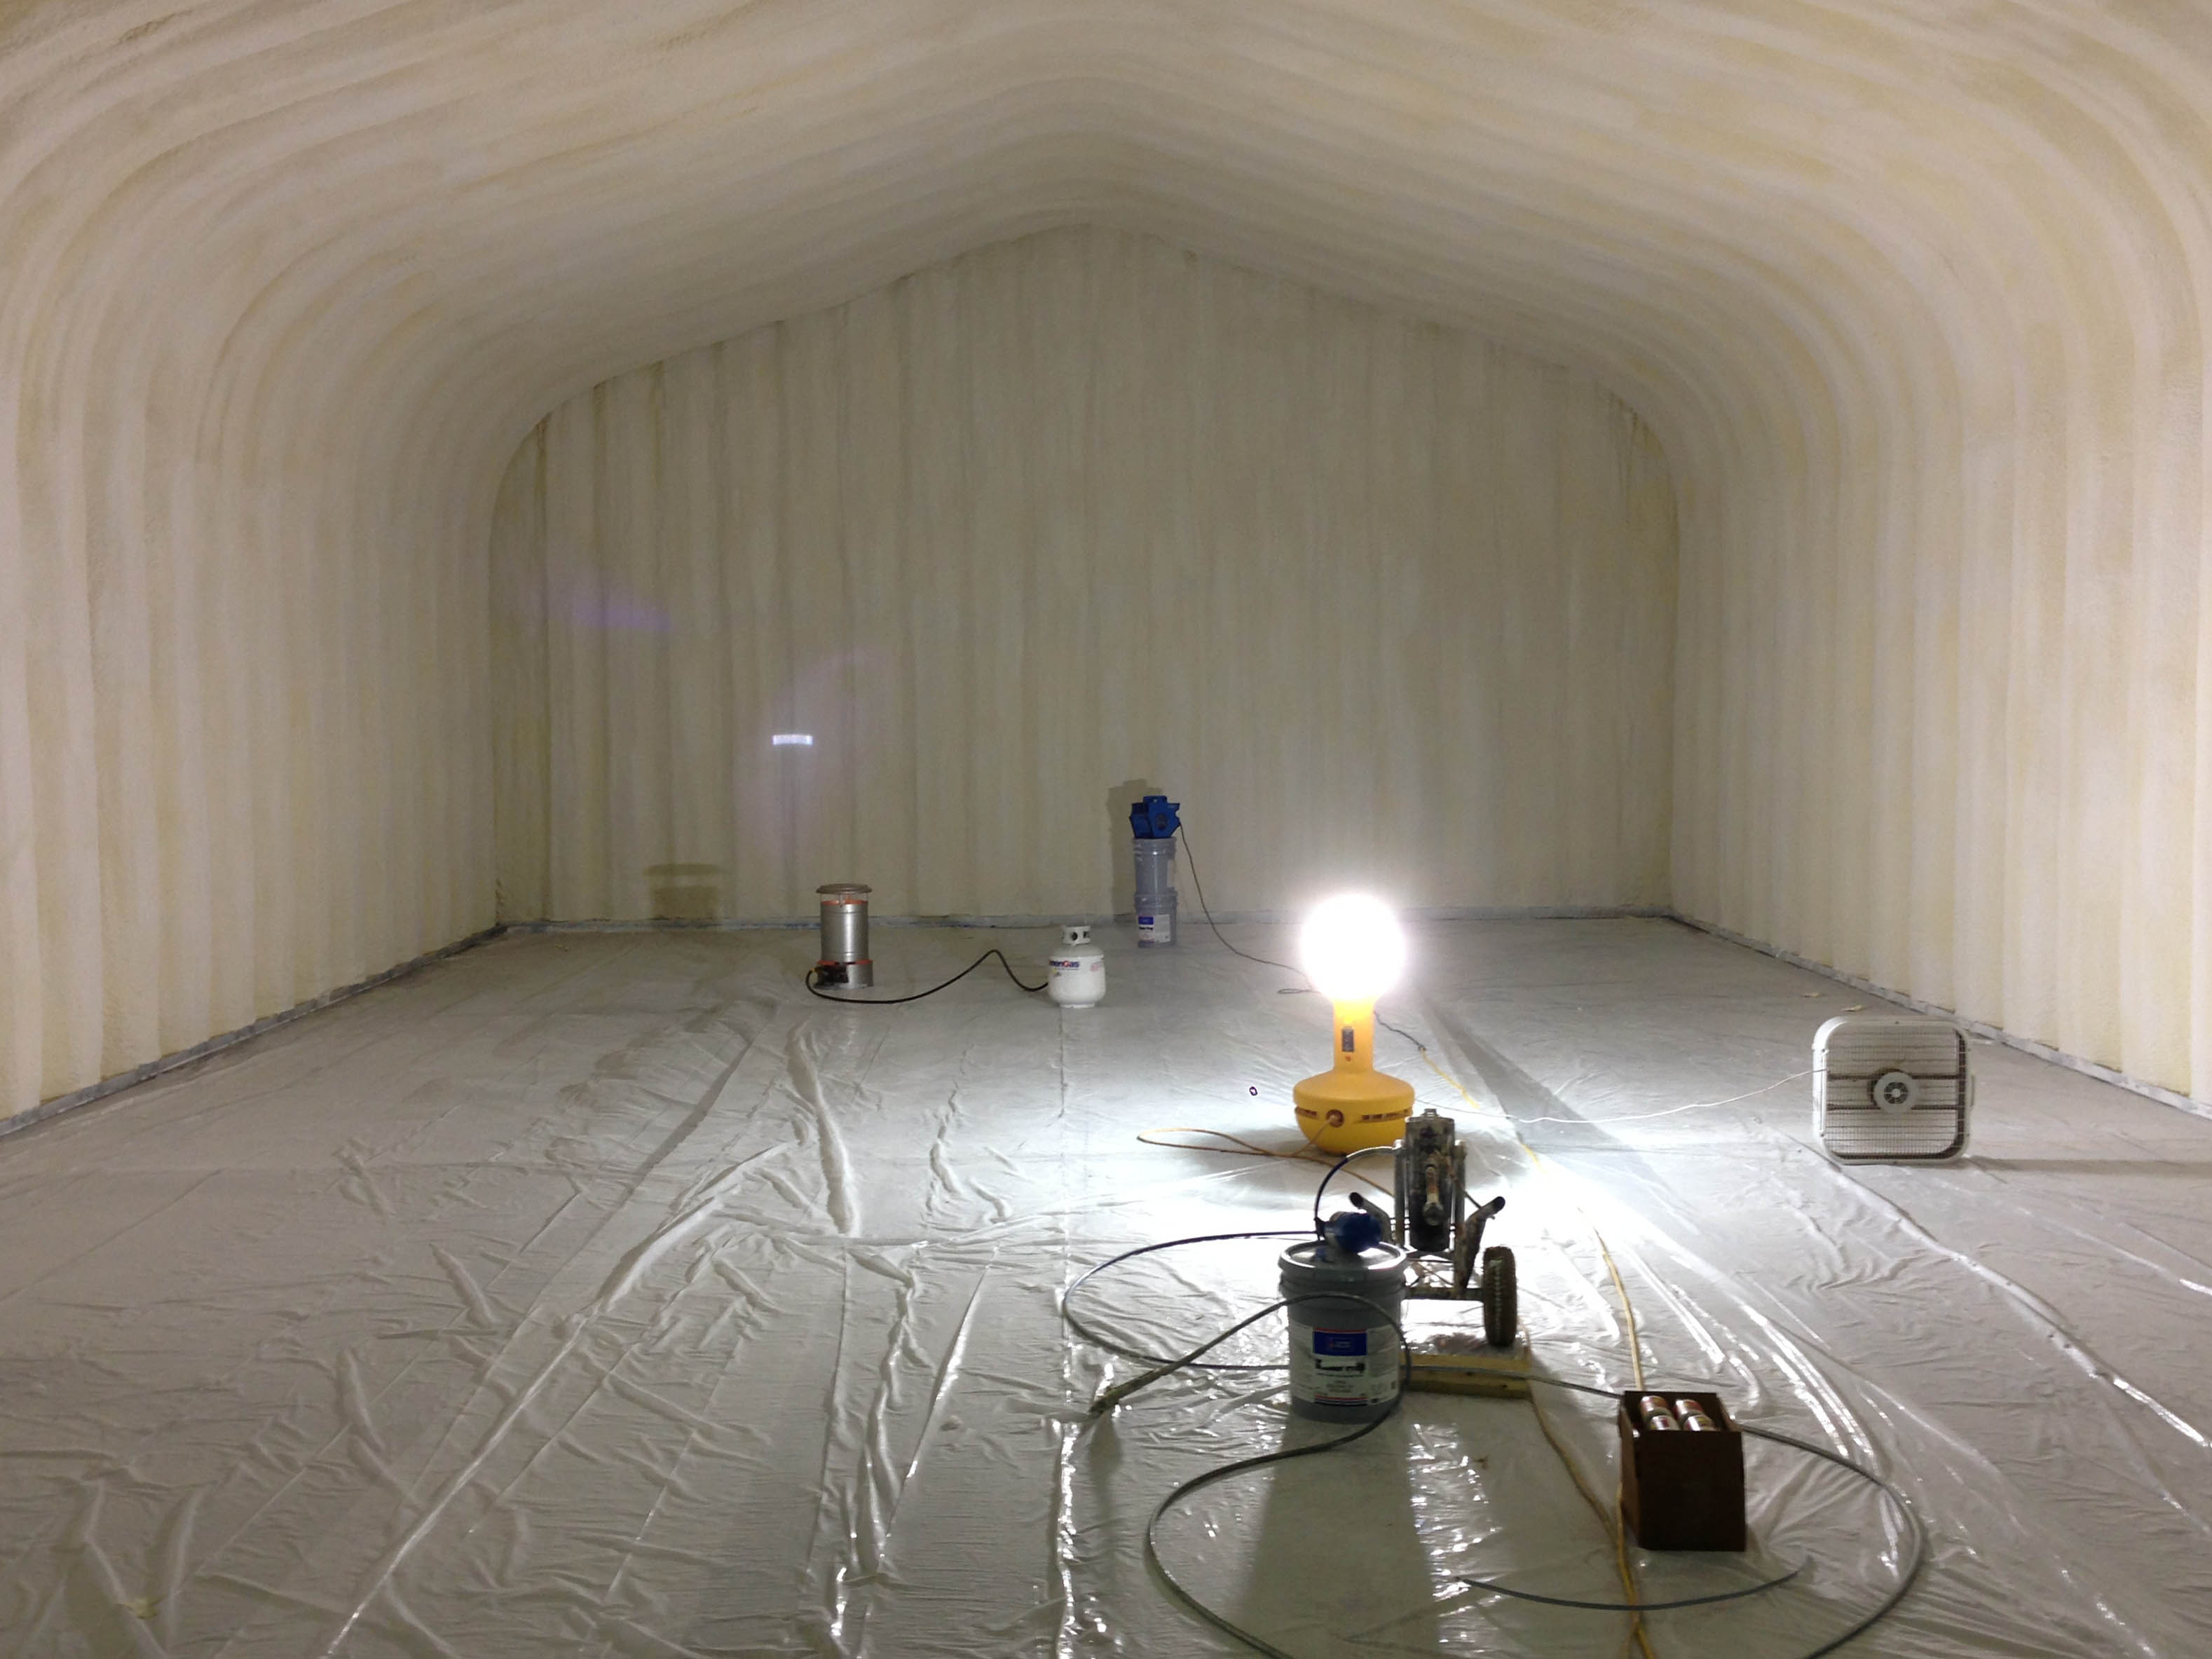 Spray on insulation